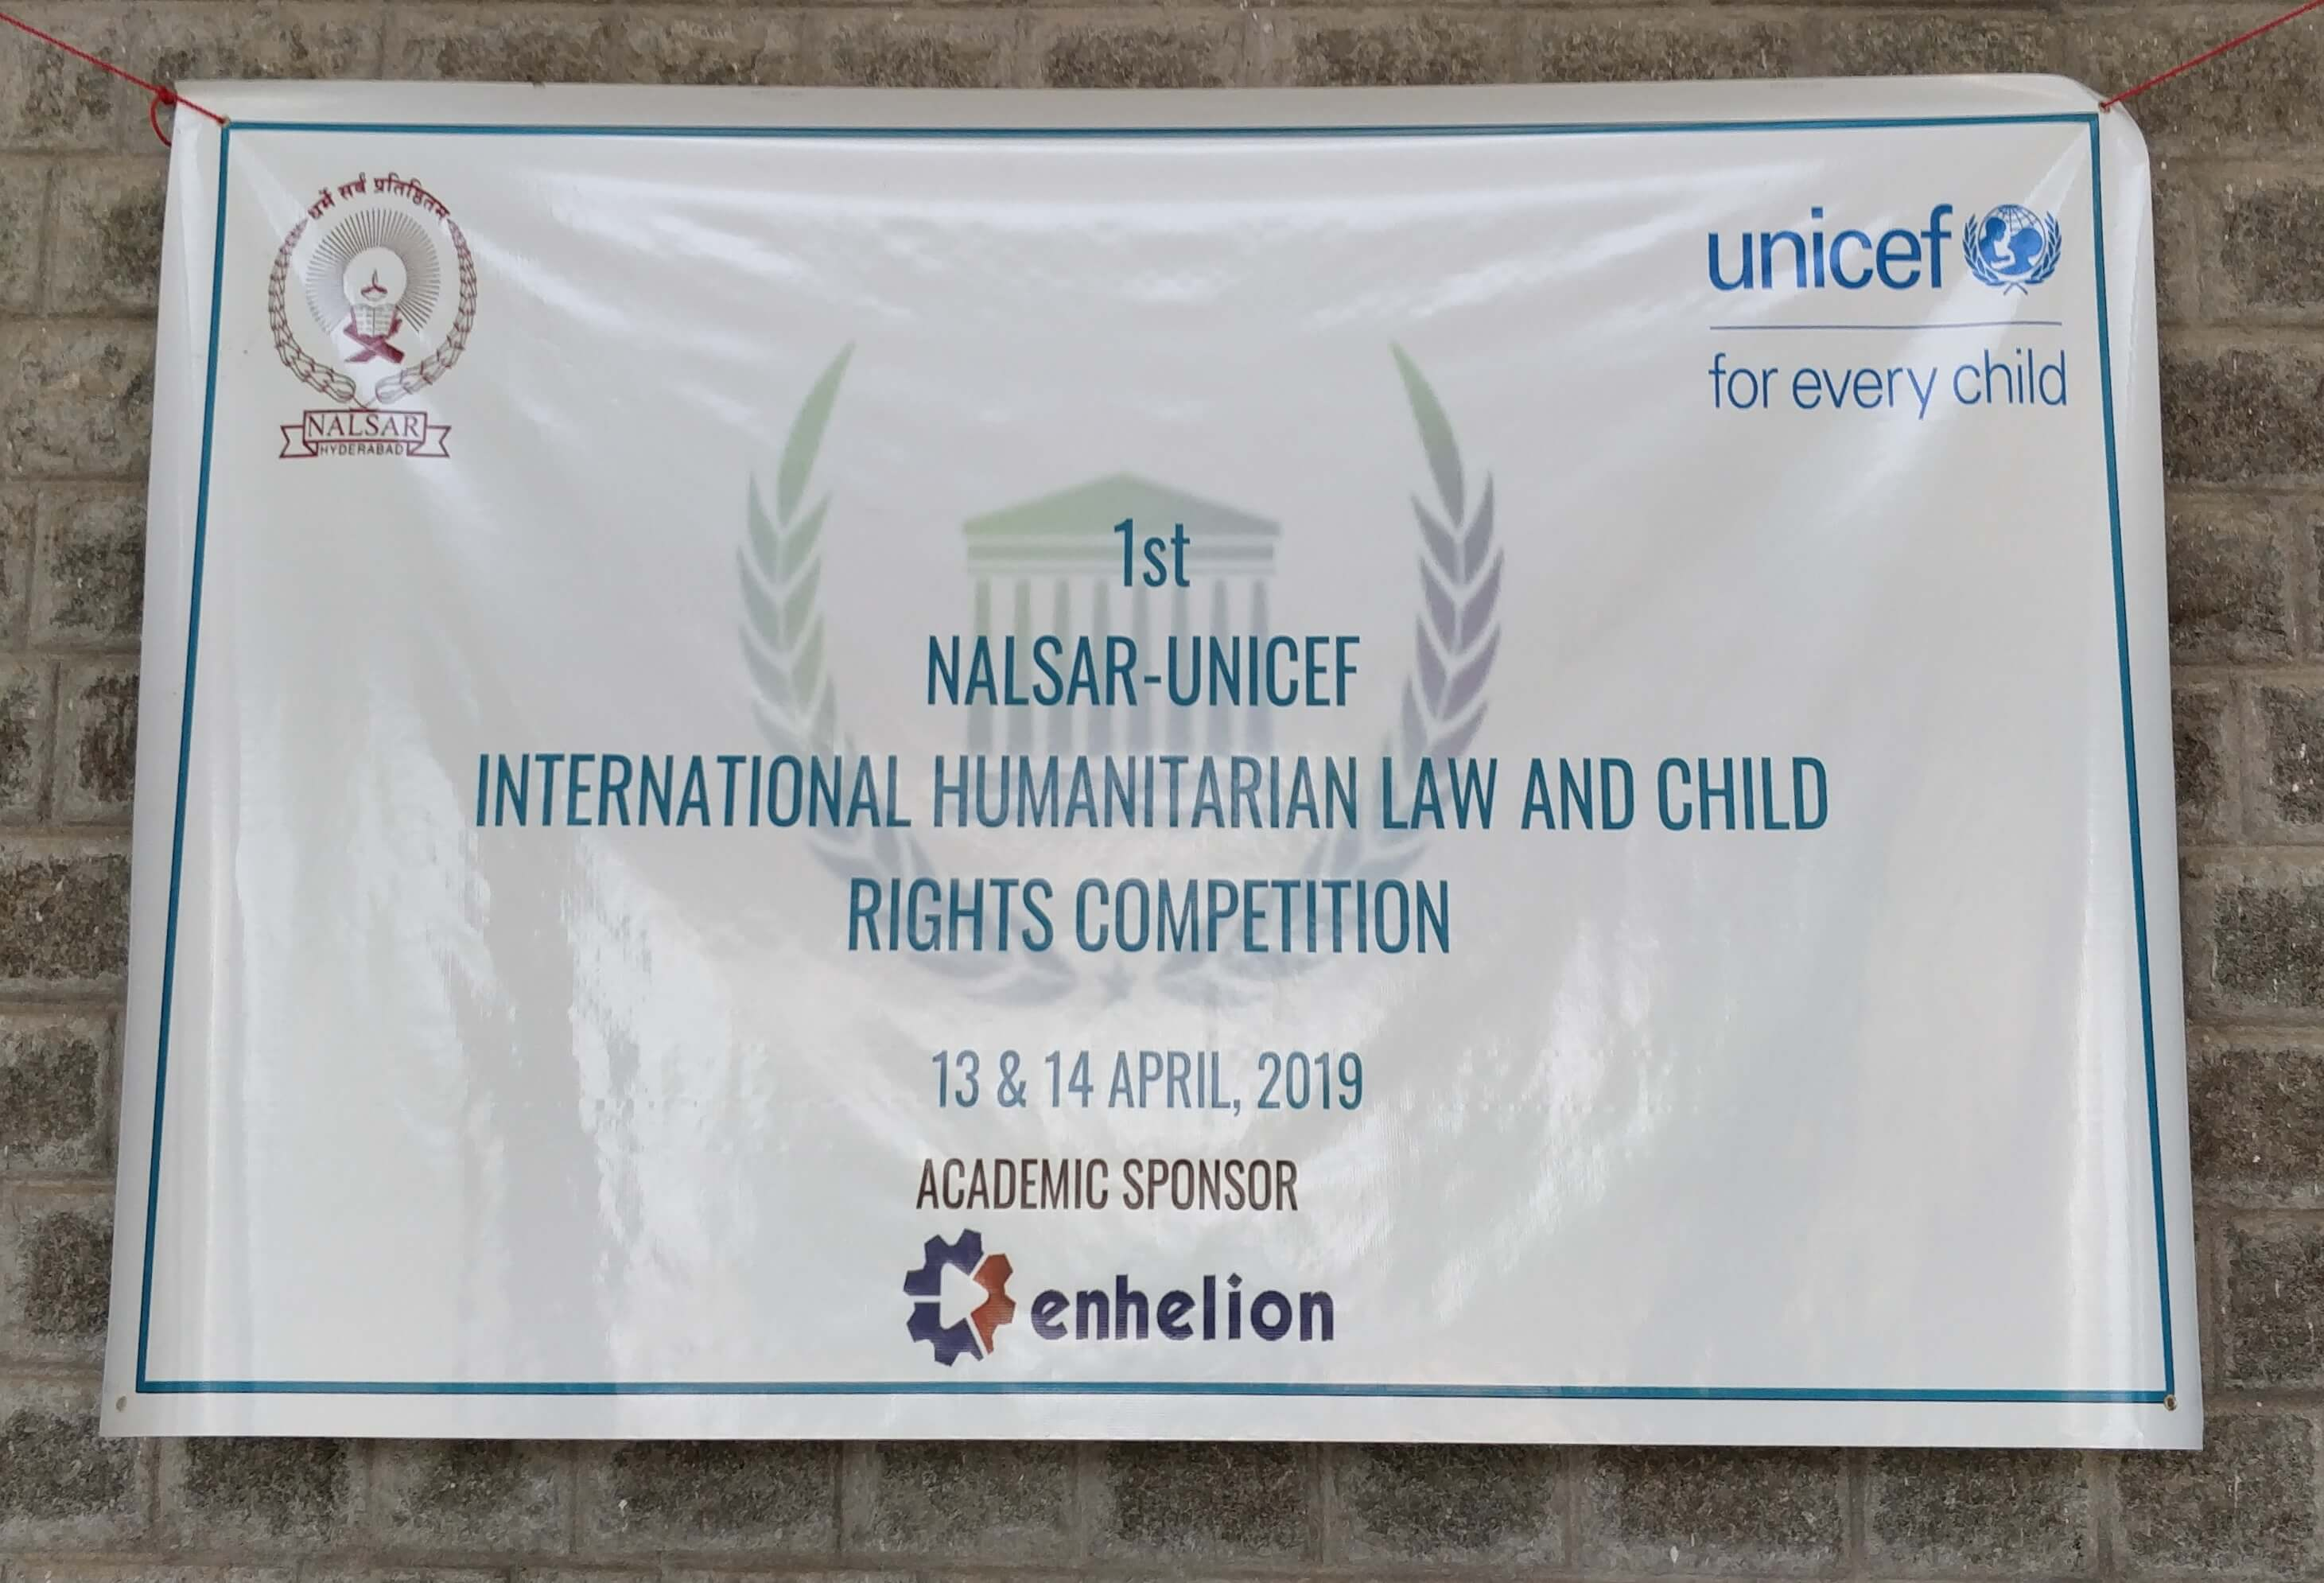 A Write Up on the International Humanitarian Law and Child Rights Competition held at NALSAR, Hyderabad